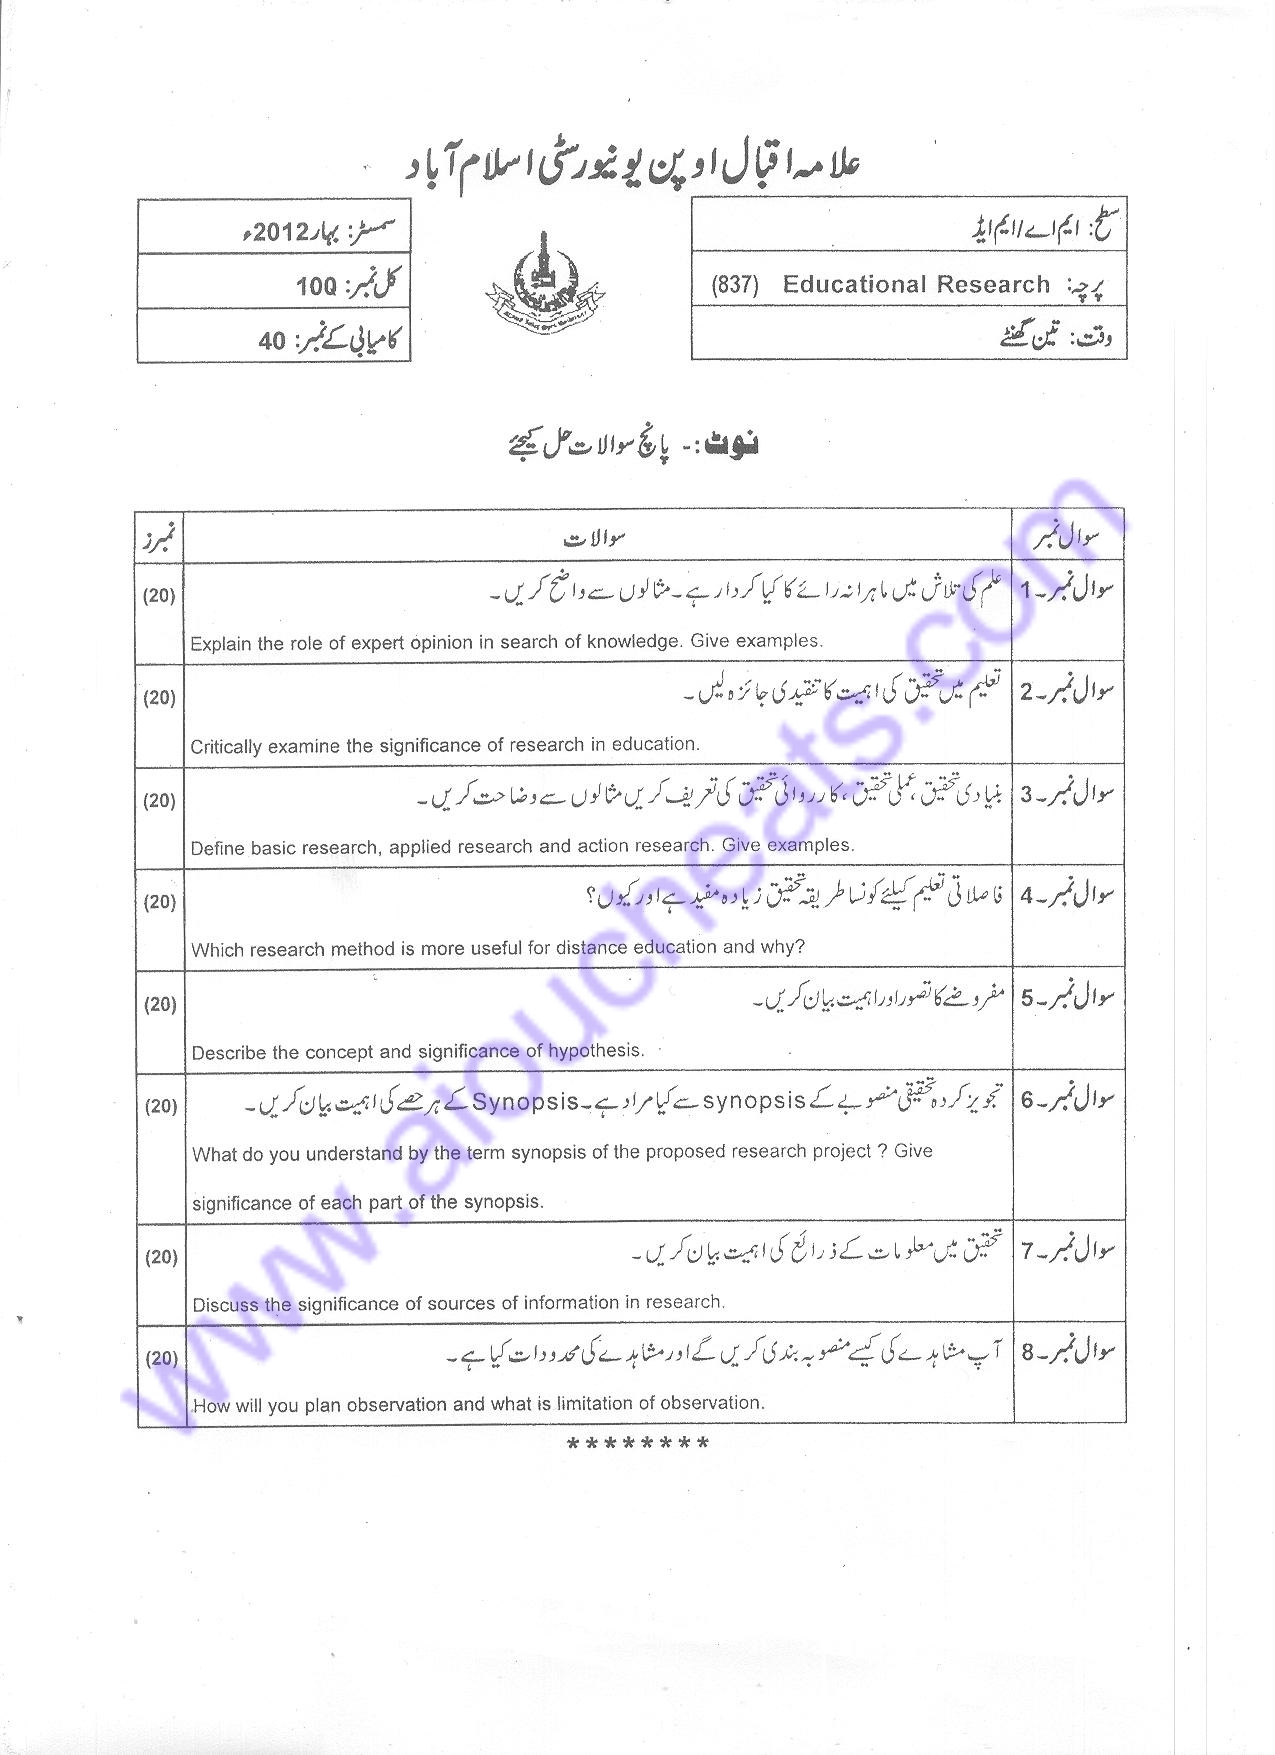 research past paper Research methodology (paper iv) is offered in ma, msc economics part ii in punjab university (pu) last years papers are being ordered here according to previous.